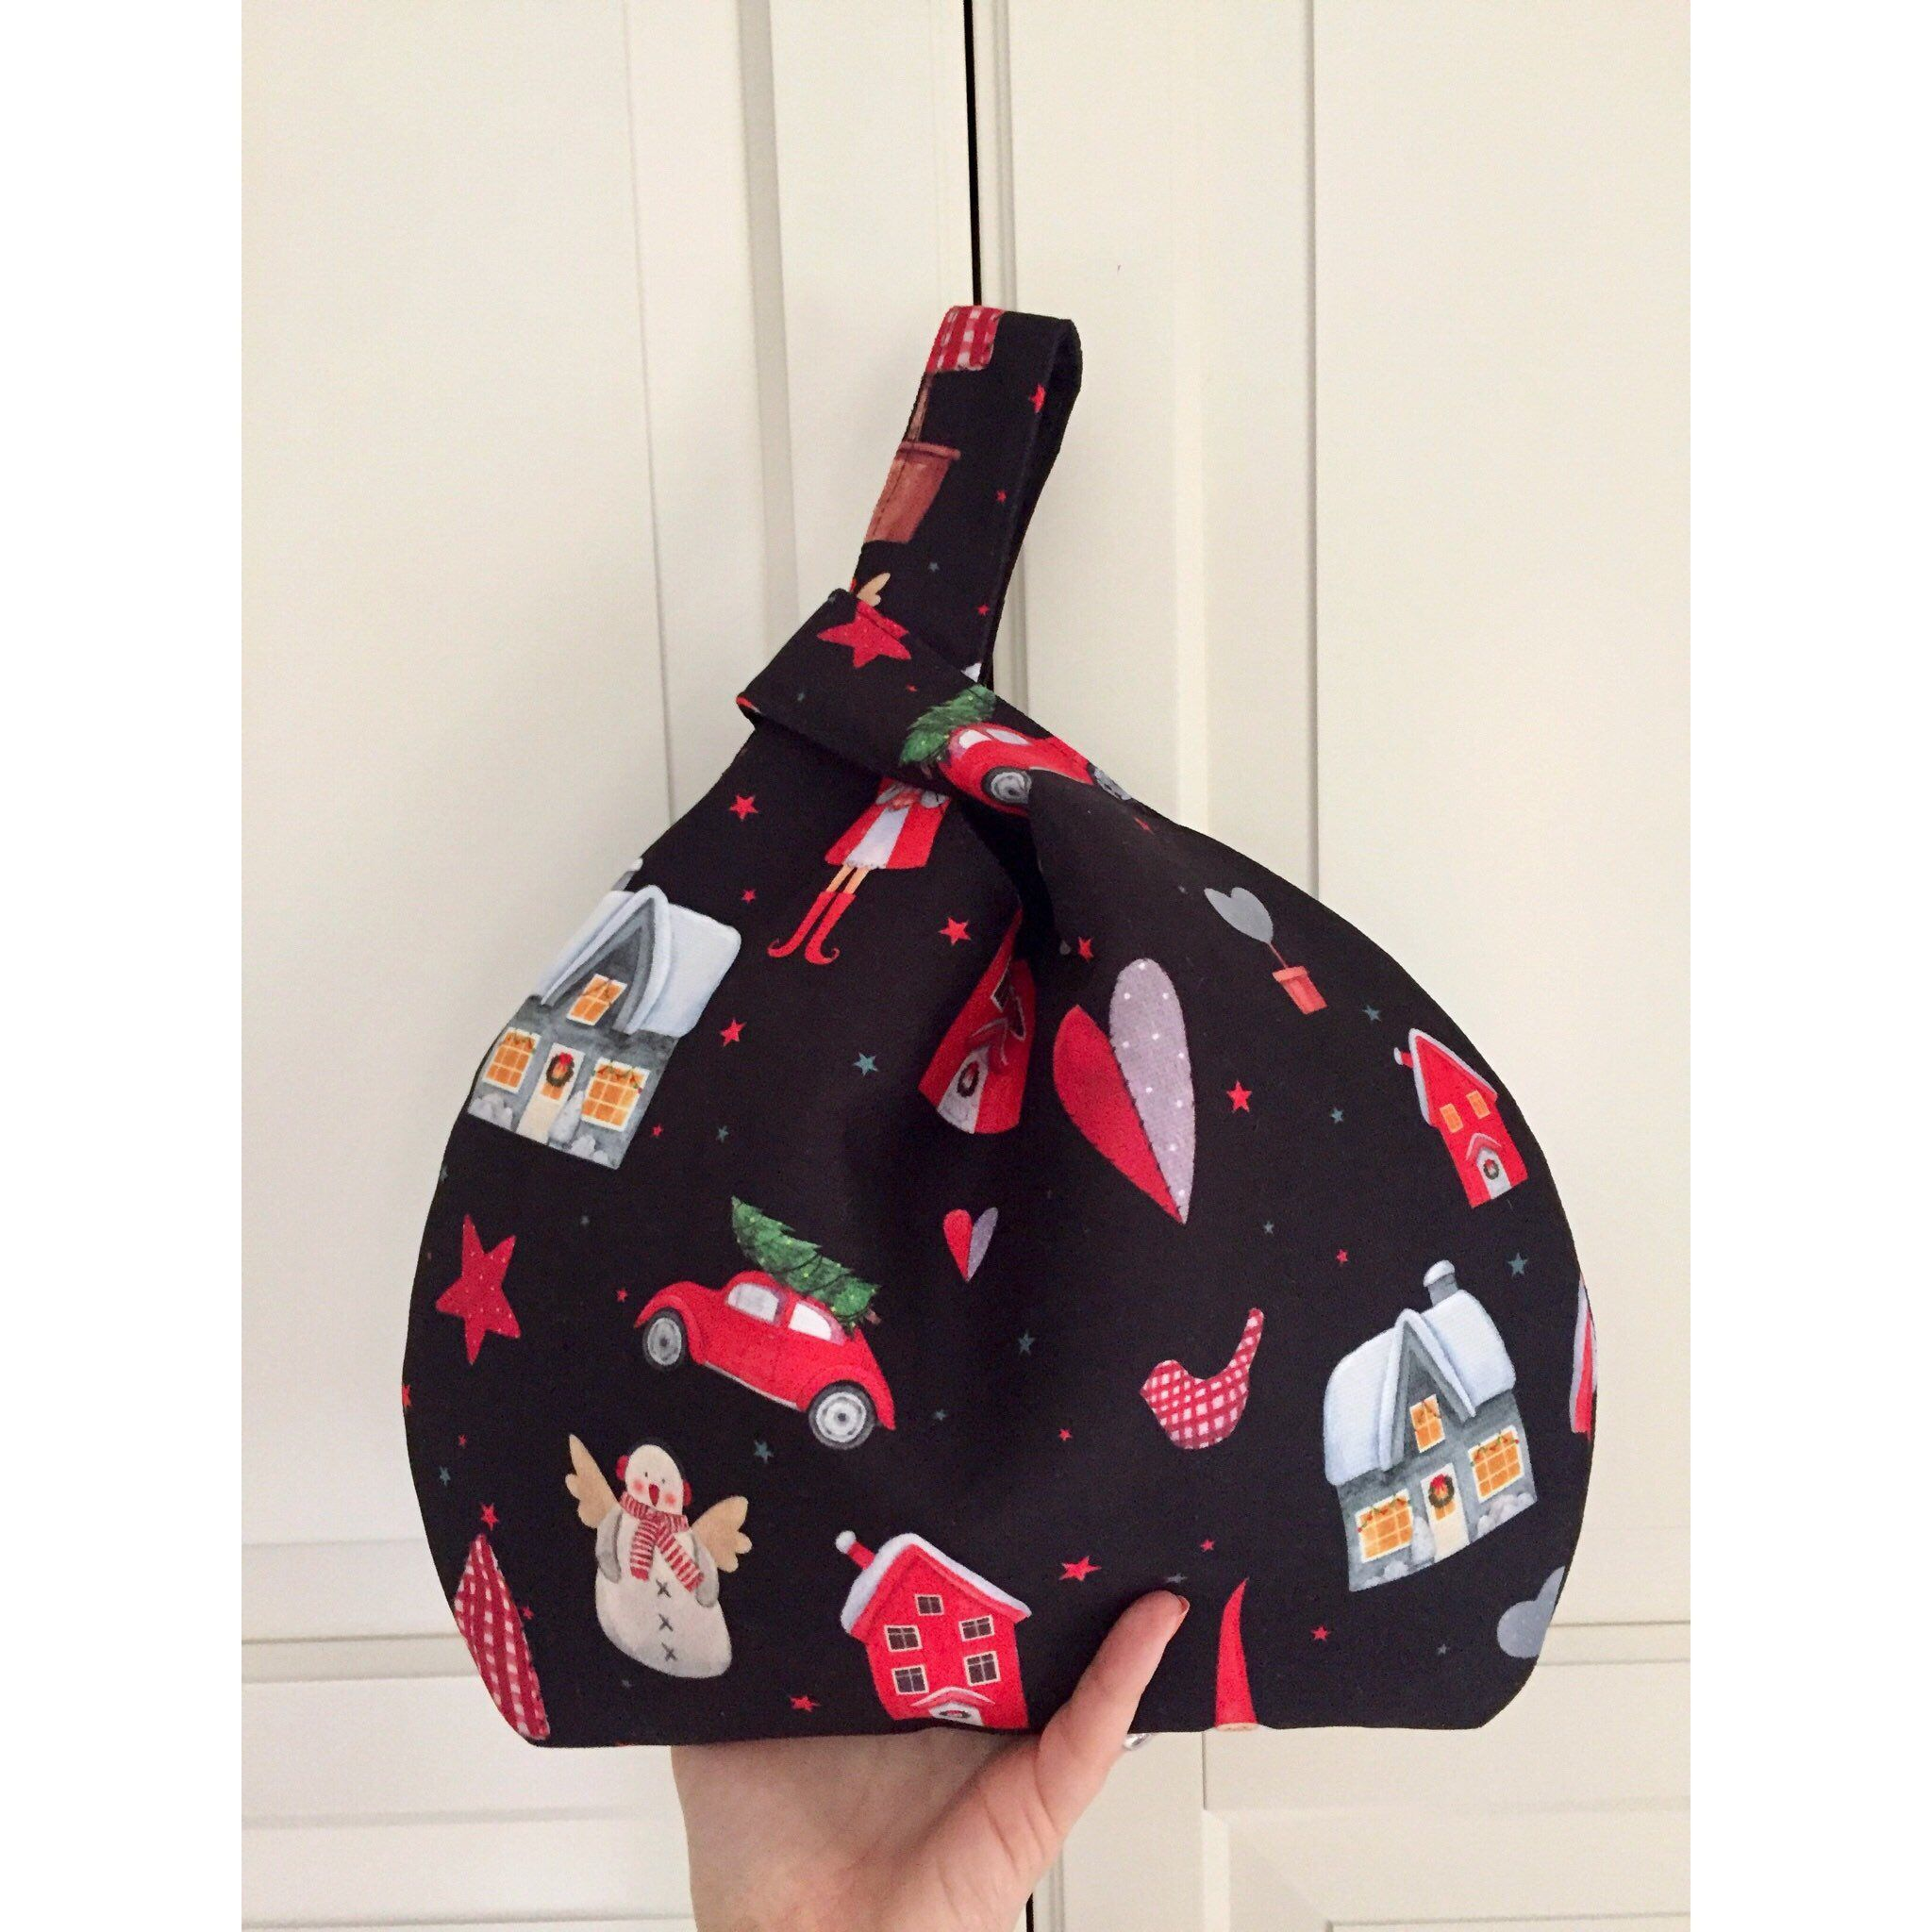 Colorful Japanese Knot Bag, New Year's Gift Bag, Wristlet